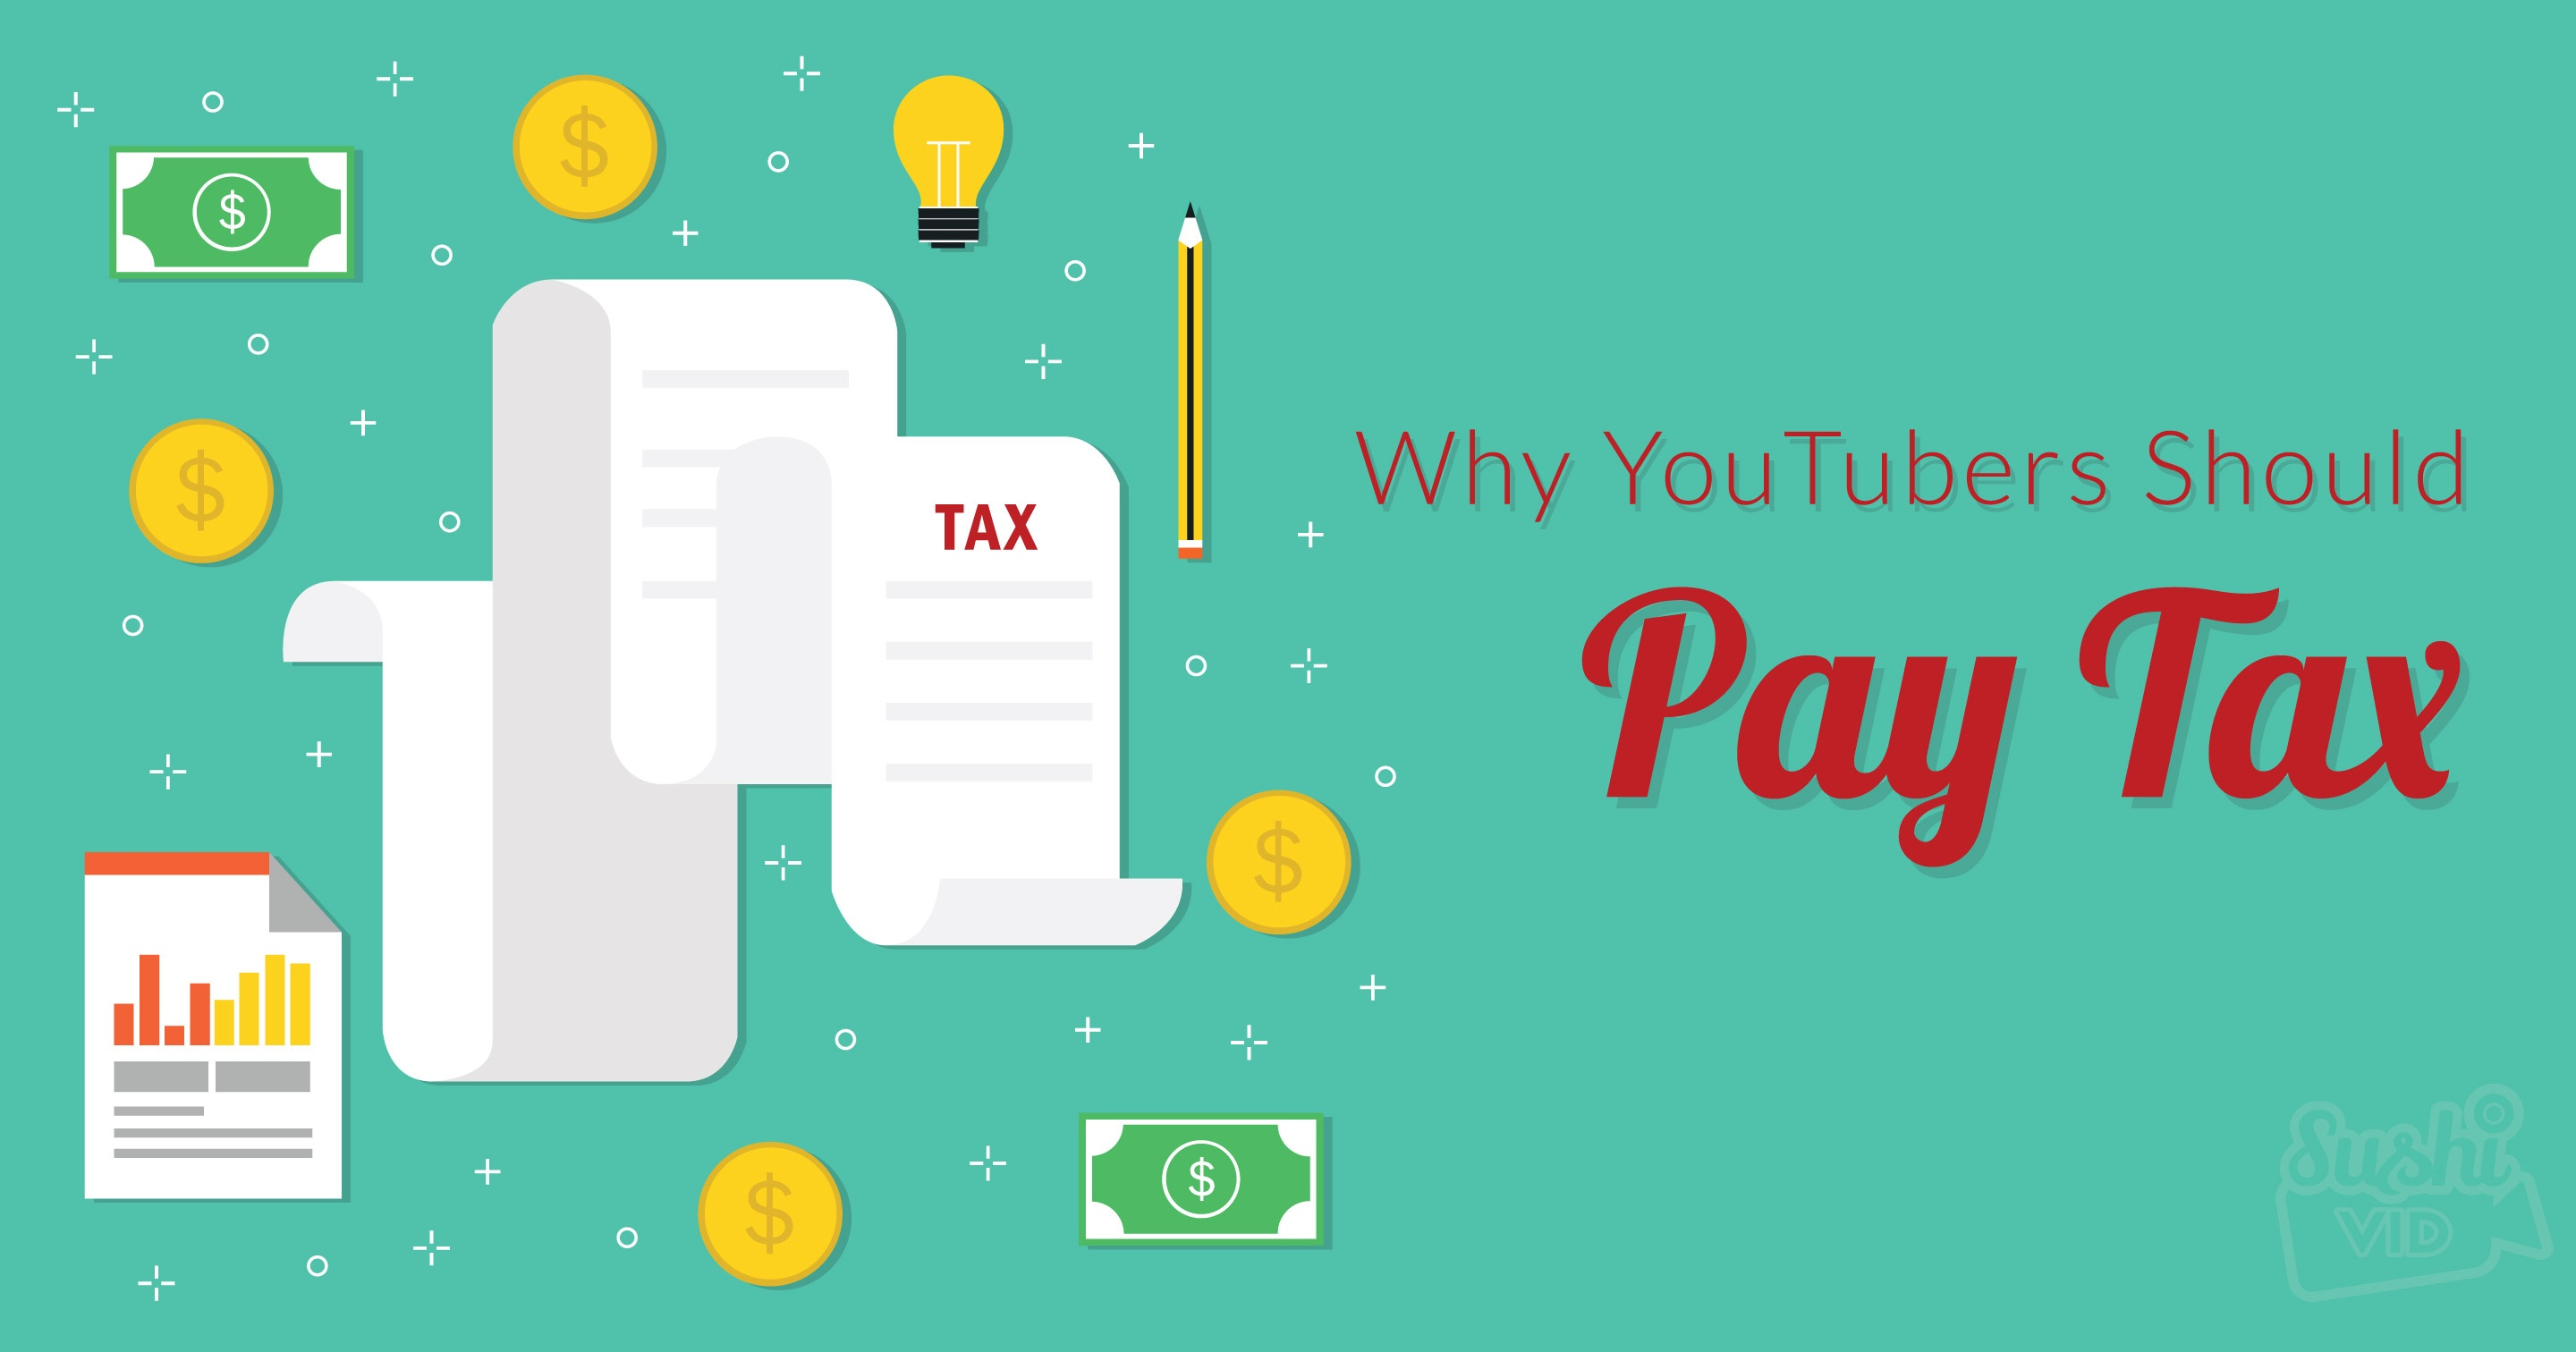 20160324 - Why YouTubers Should Pay Tax - Influencer Marketing.jpg